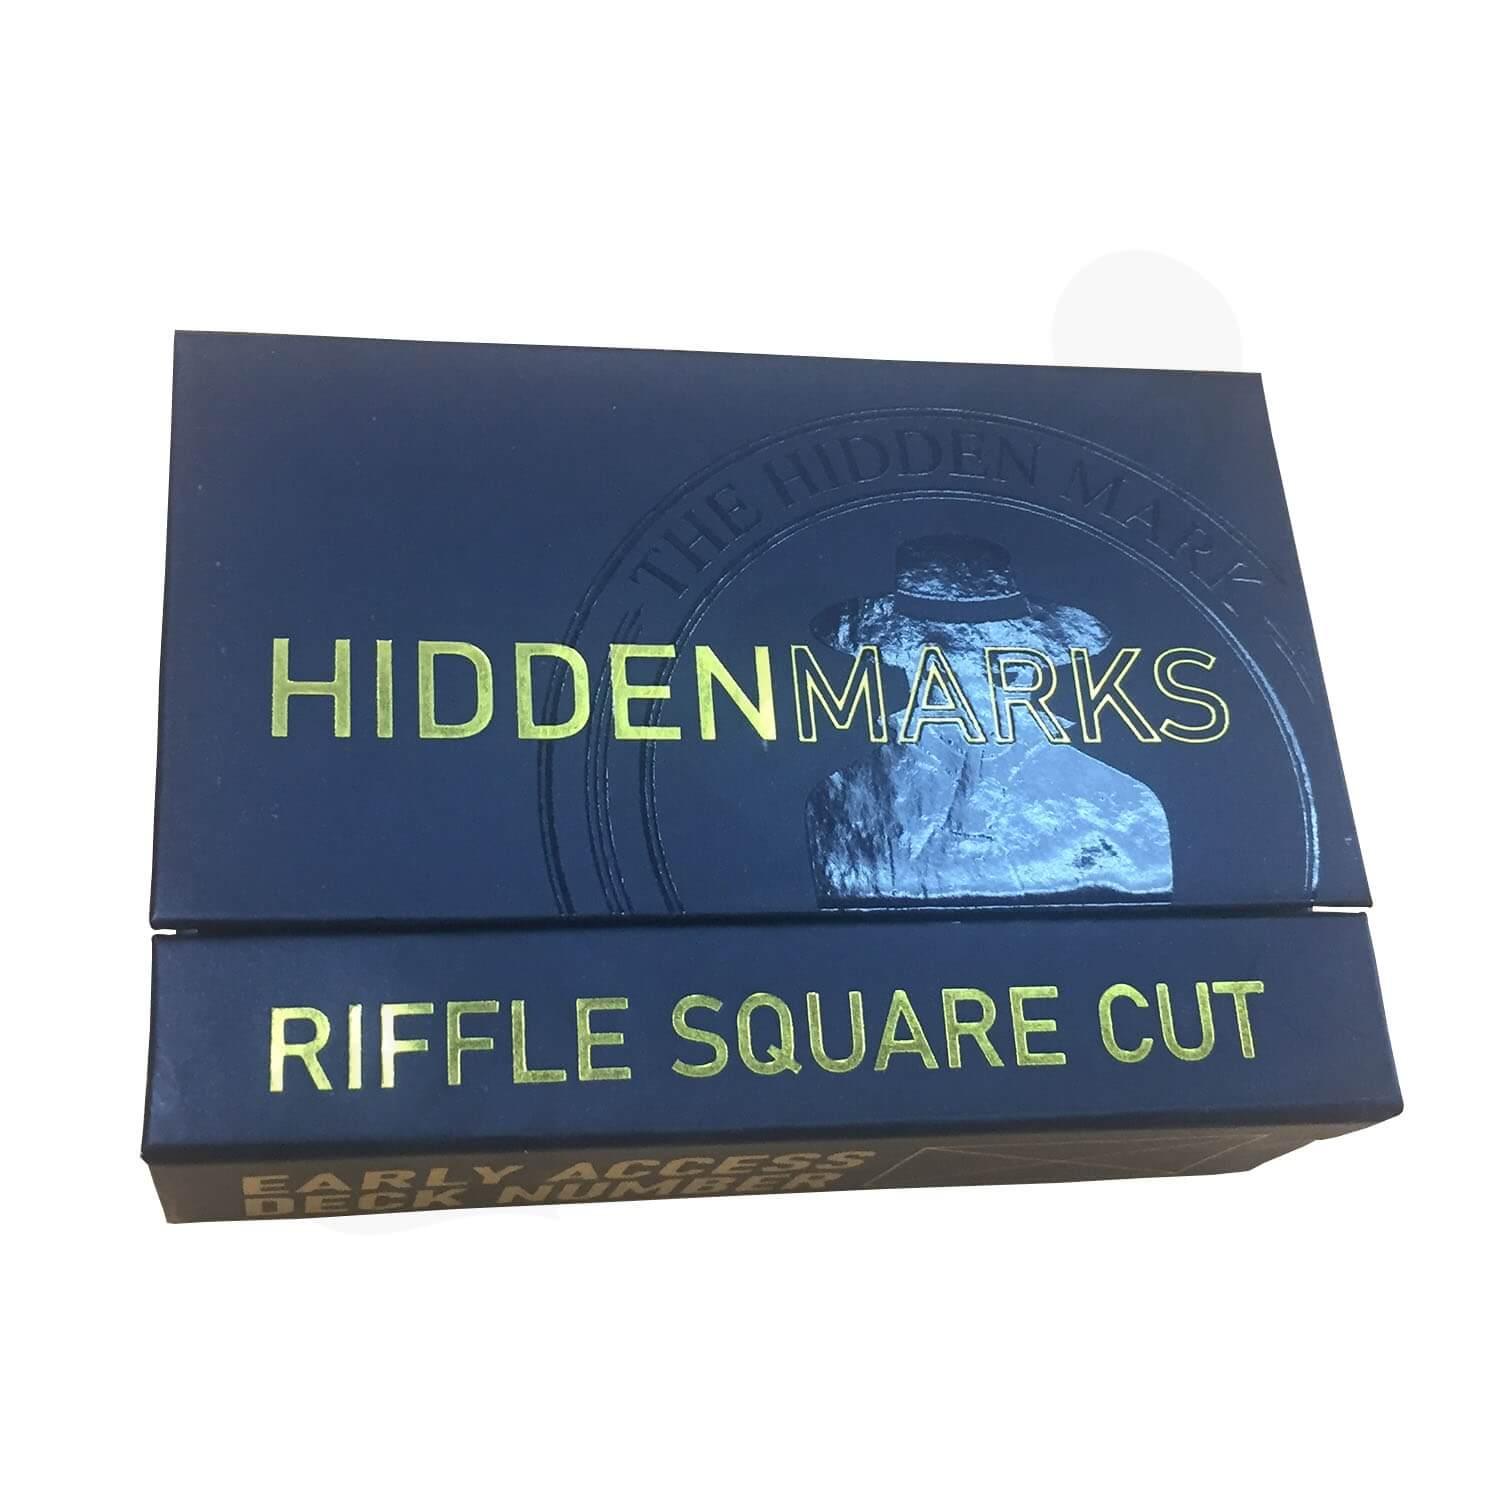 Hinged Magnetic Closure Lid Box with v shaped cut interior